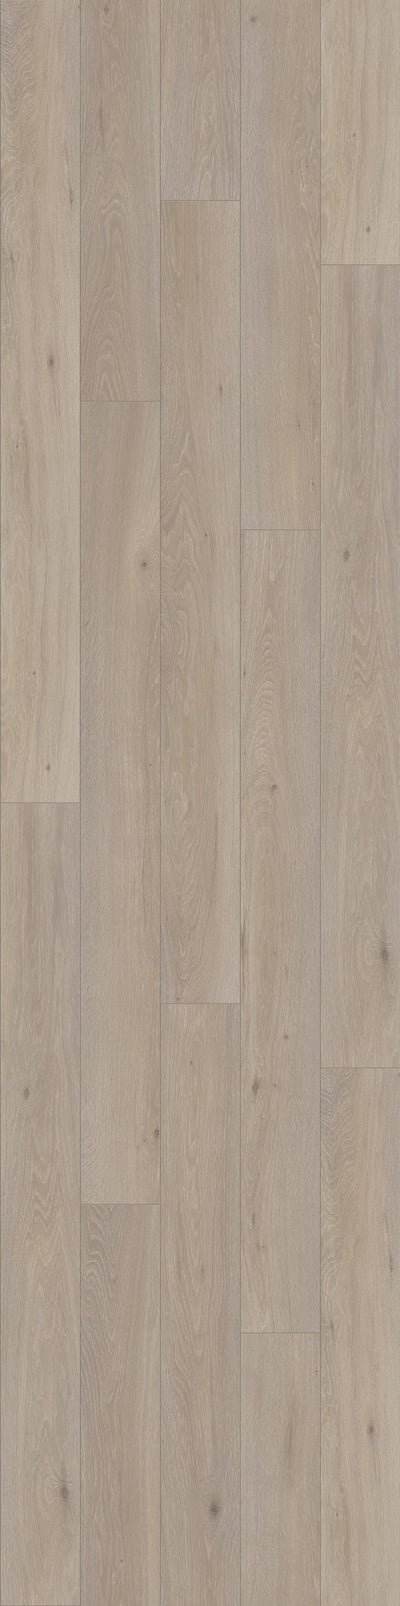 Pergo Romantic Oak Long Plank